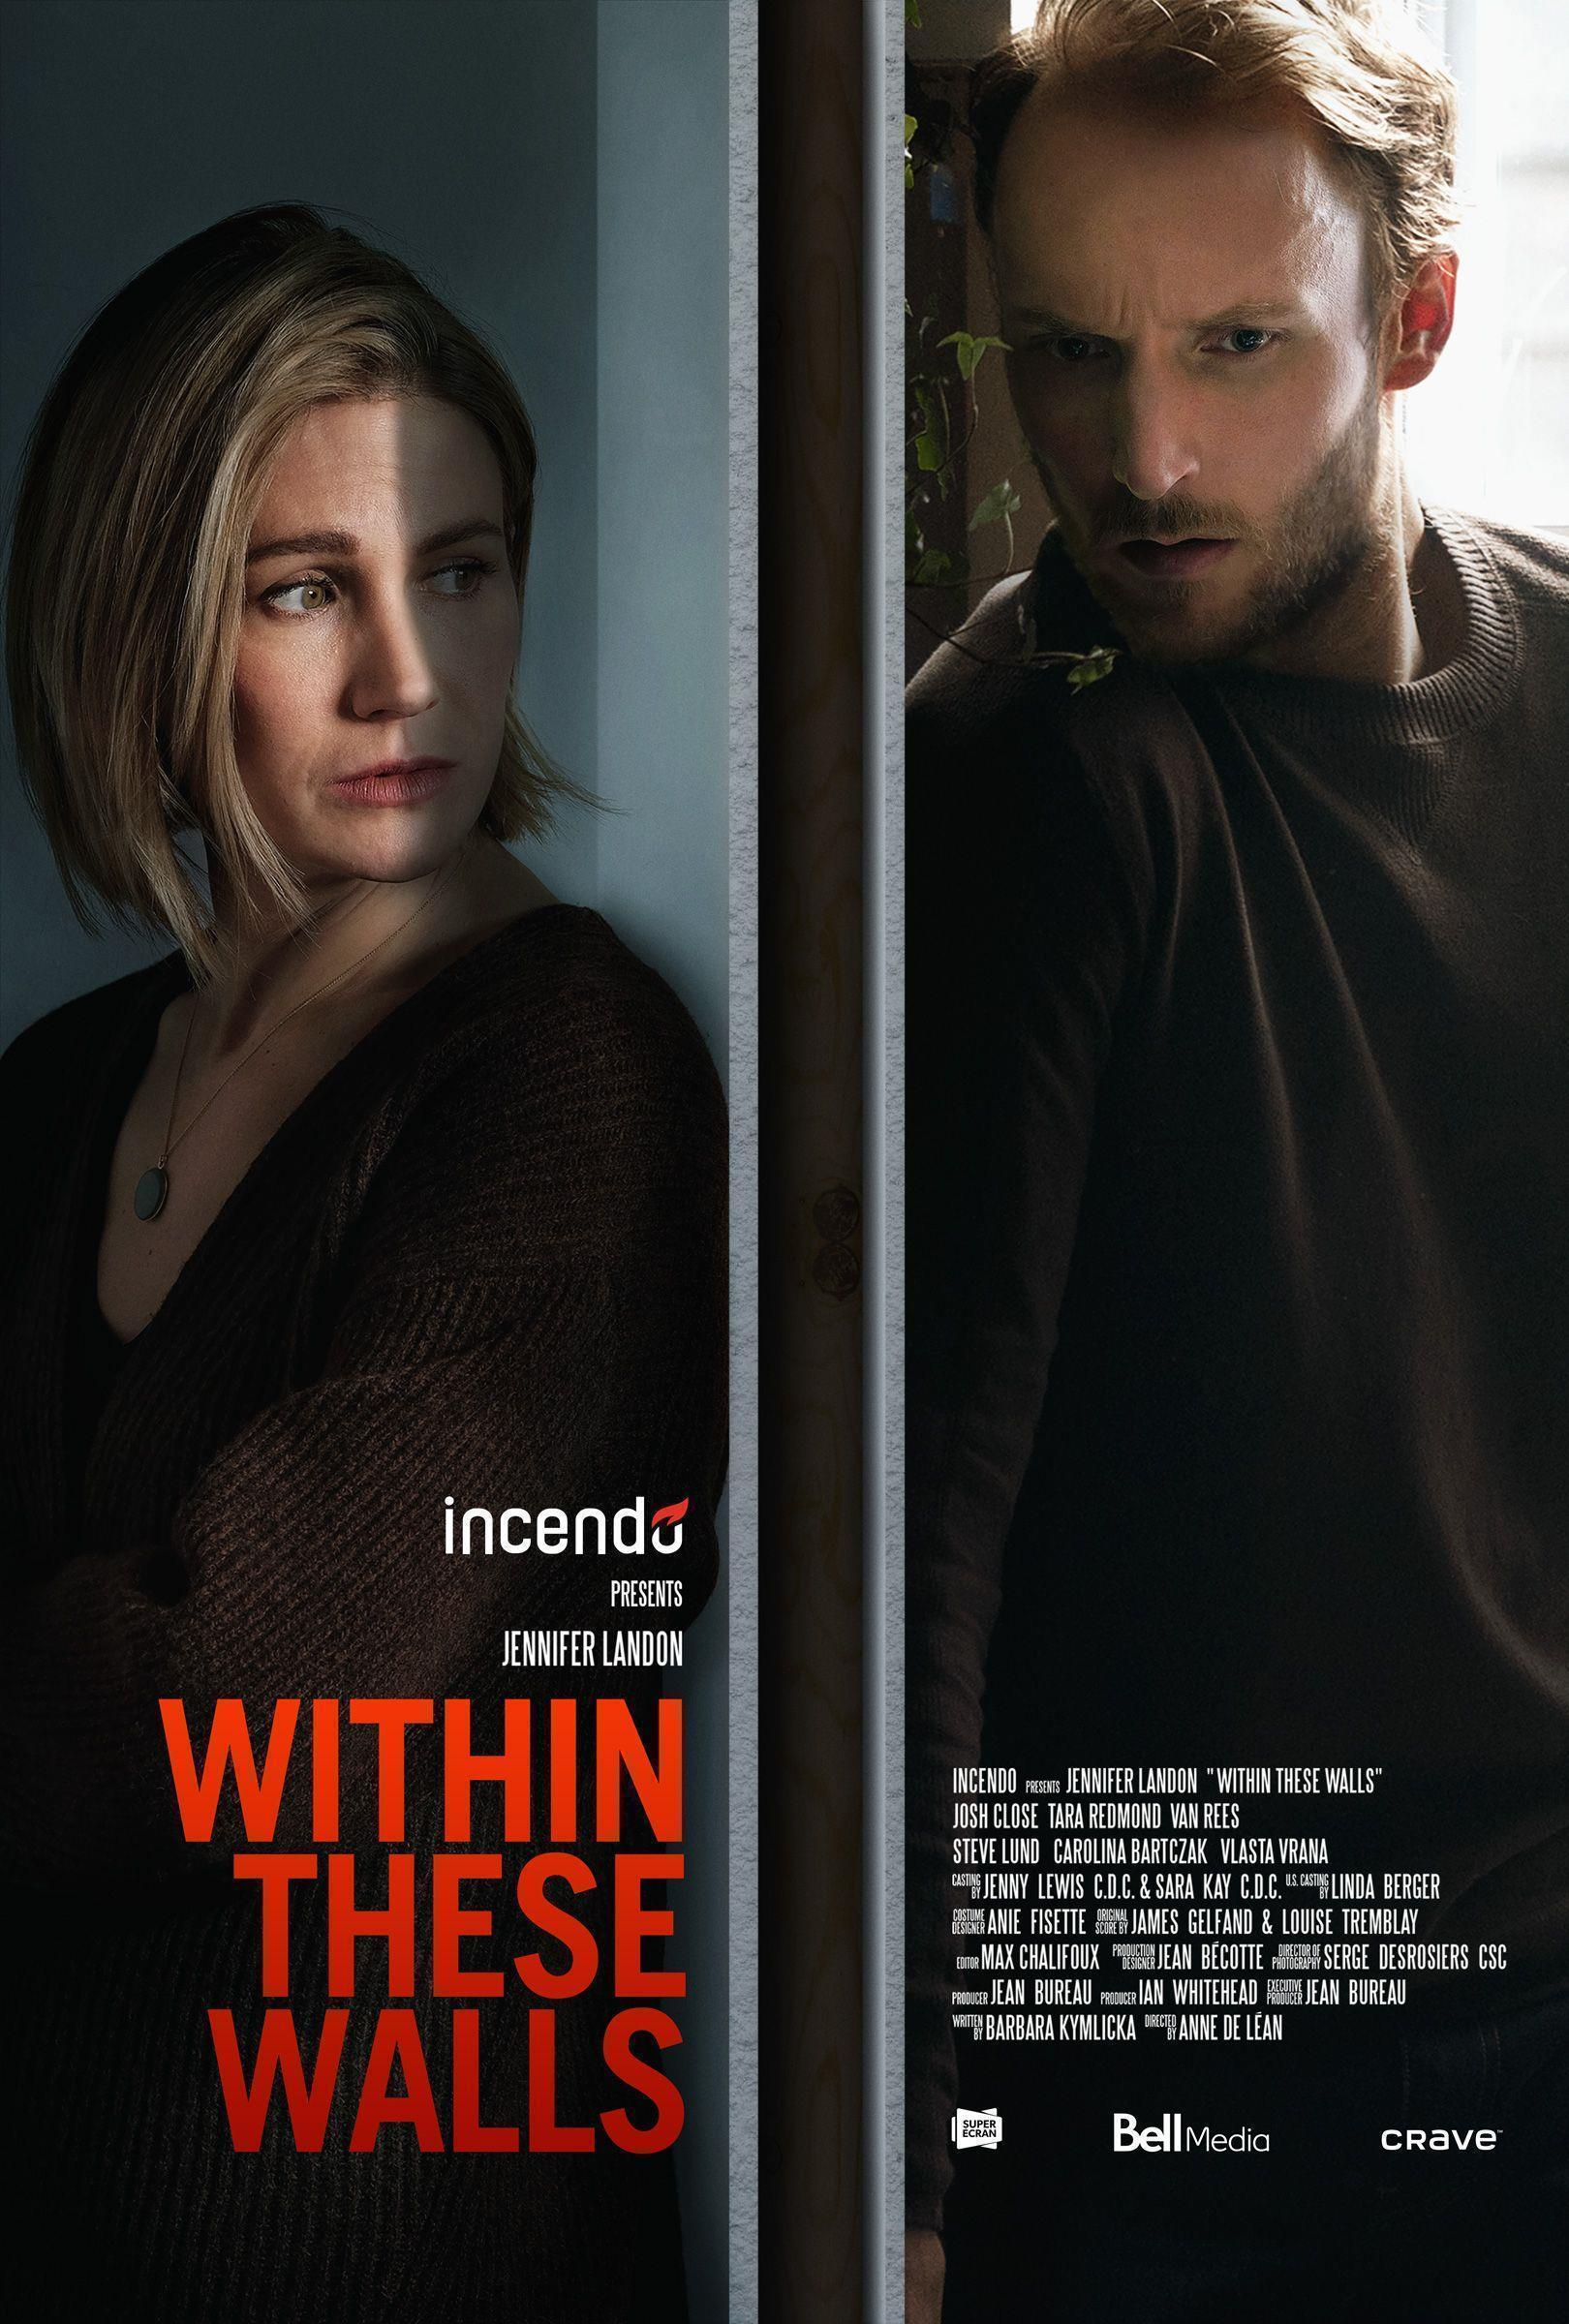 telecharger Within These Walls 2020 FRENCH 720p WEB-DL x264-STVFRV